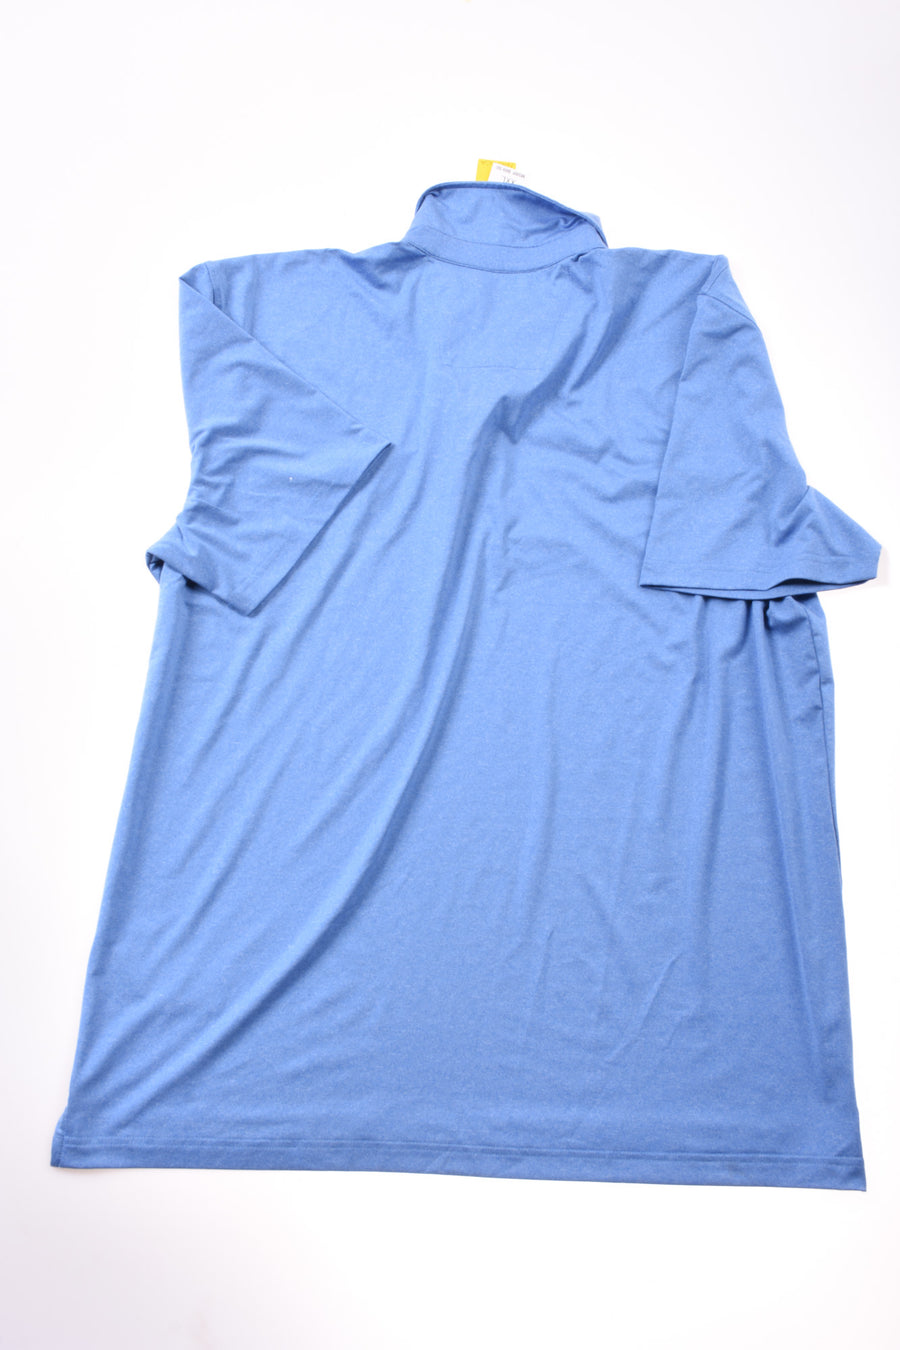 NEW Nautica Men's Plus Shirt XX-Large Blue